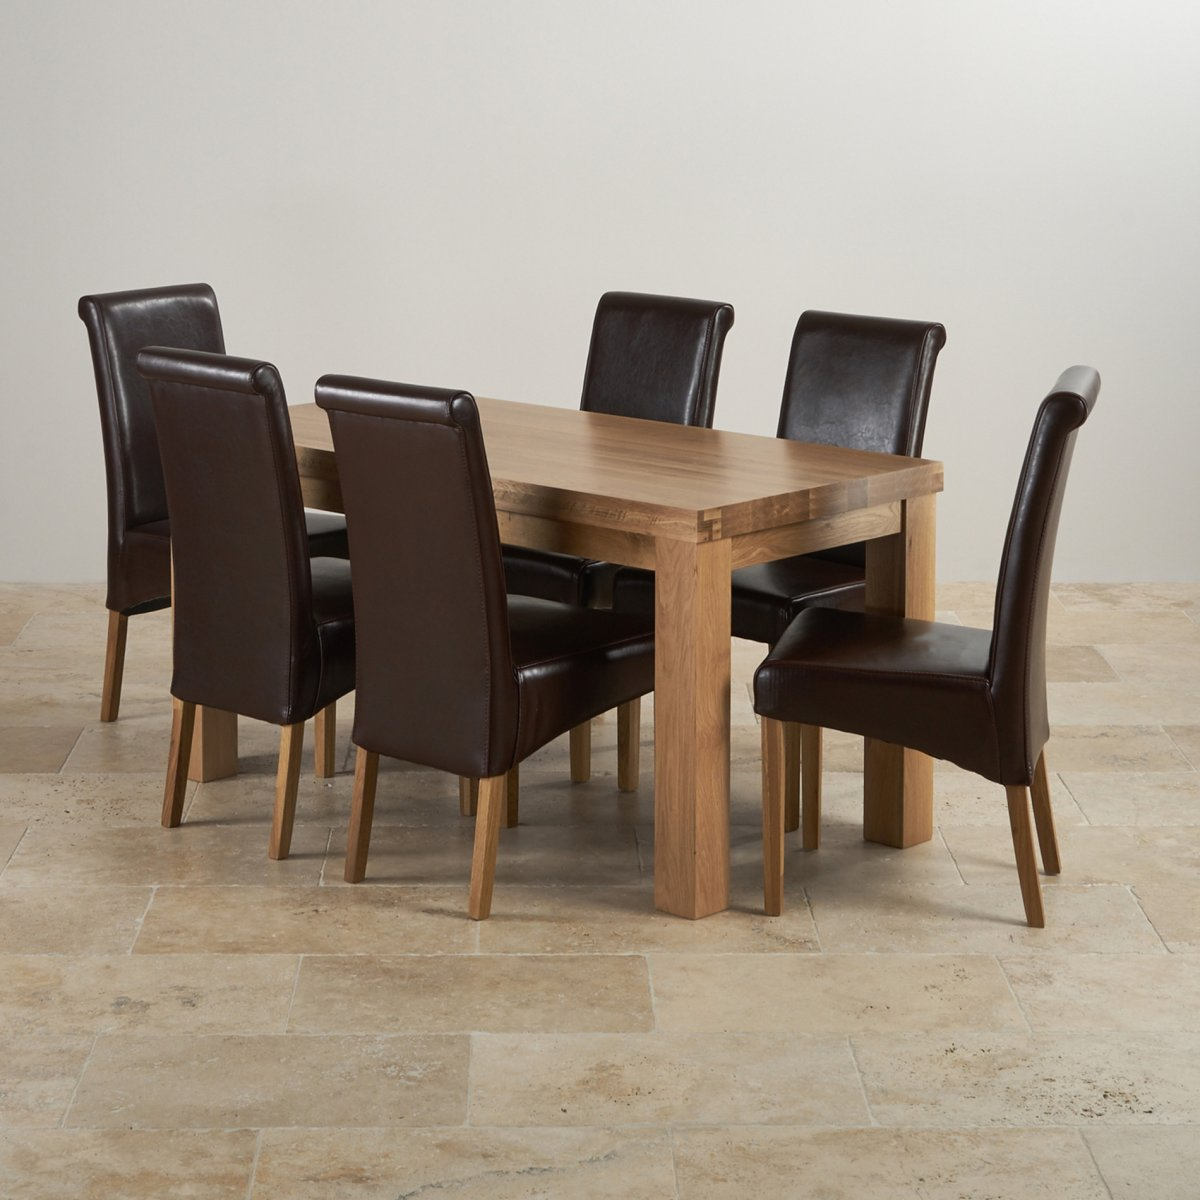 Dining Chairs Set Contemporary Dining Set In Oak Table 43 6 Brown Leather Chairs